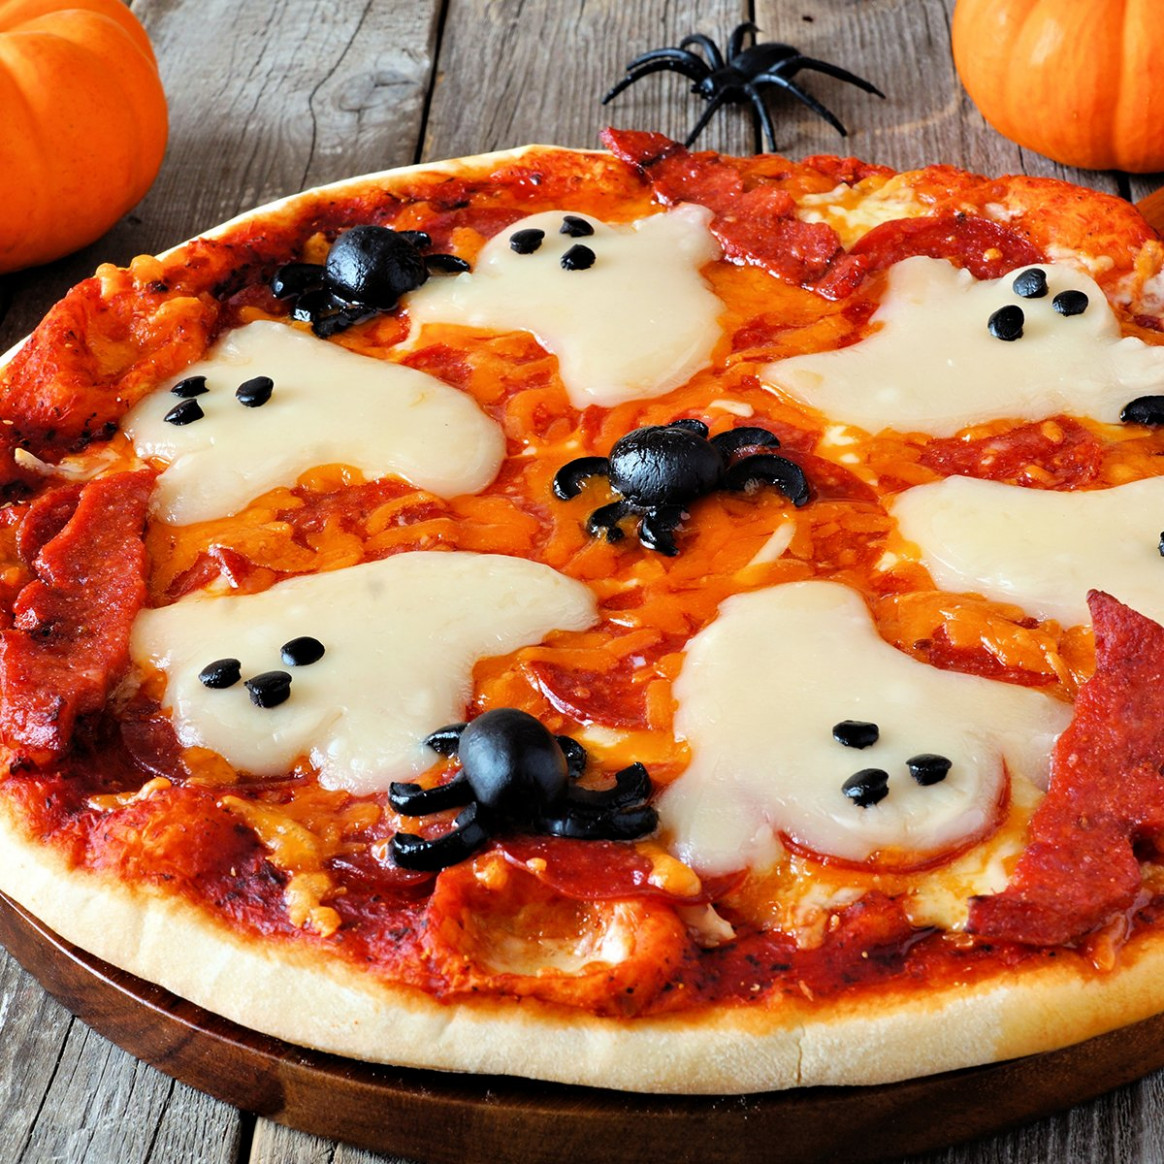 11 Halloween Food Ideas You Haven't Tried Yet | Taste Of Home - Halloween Food Recipes